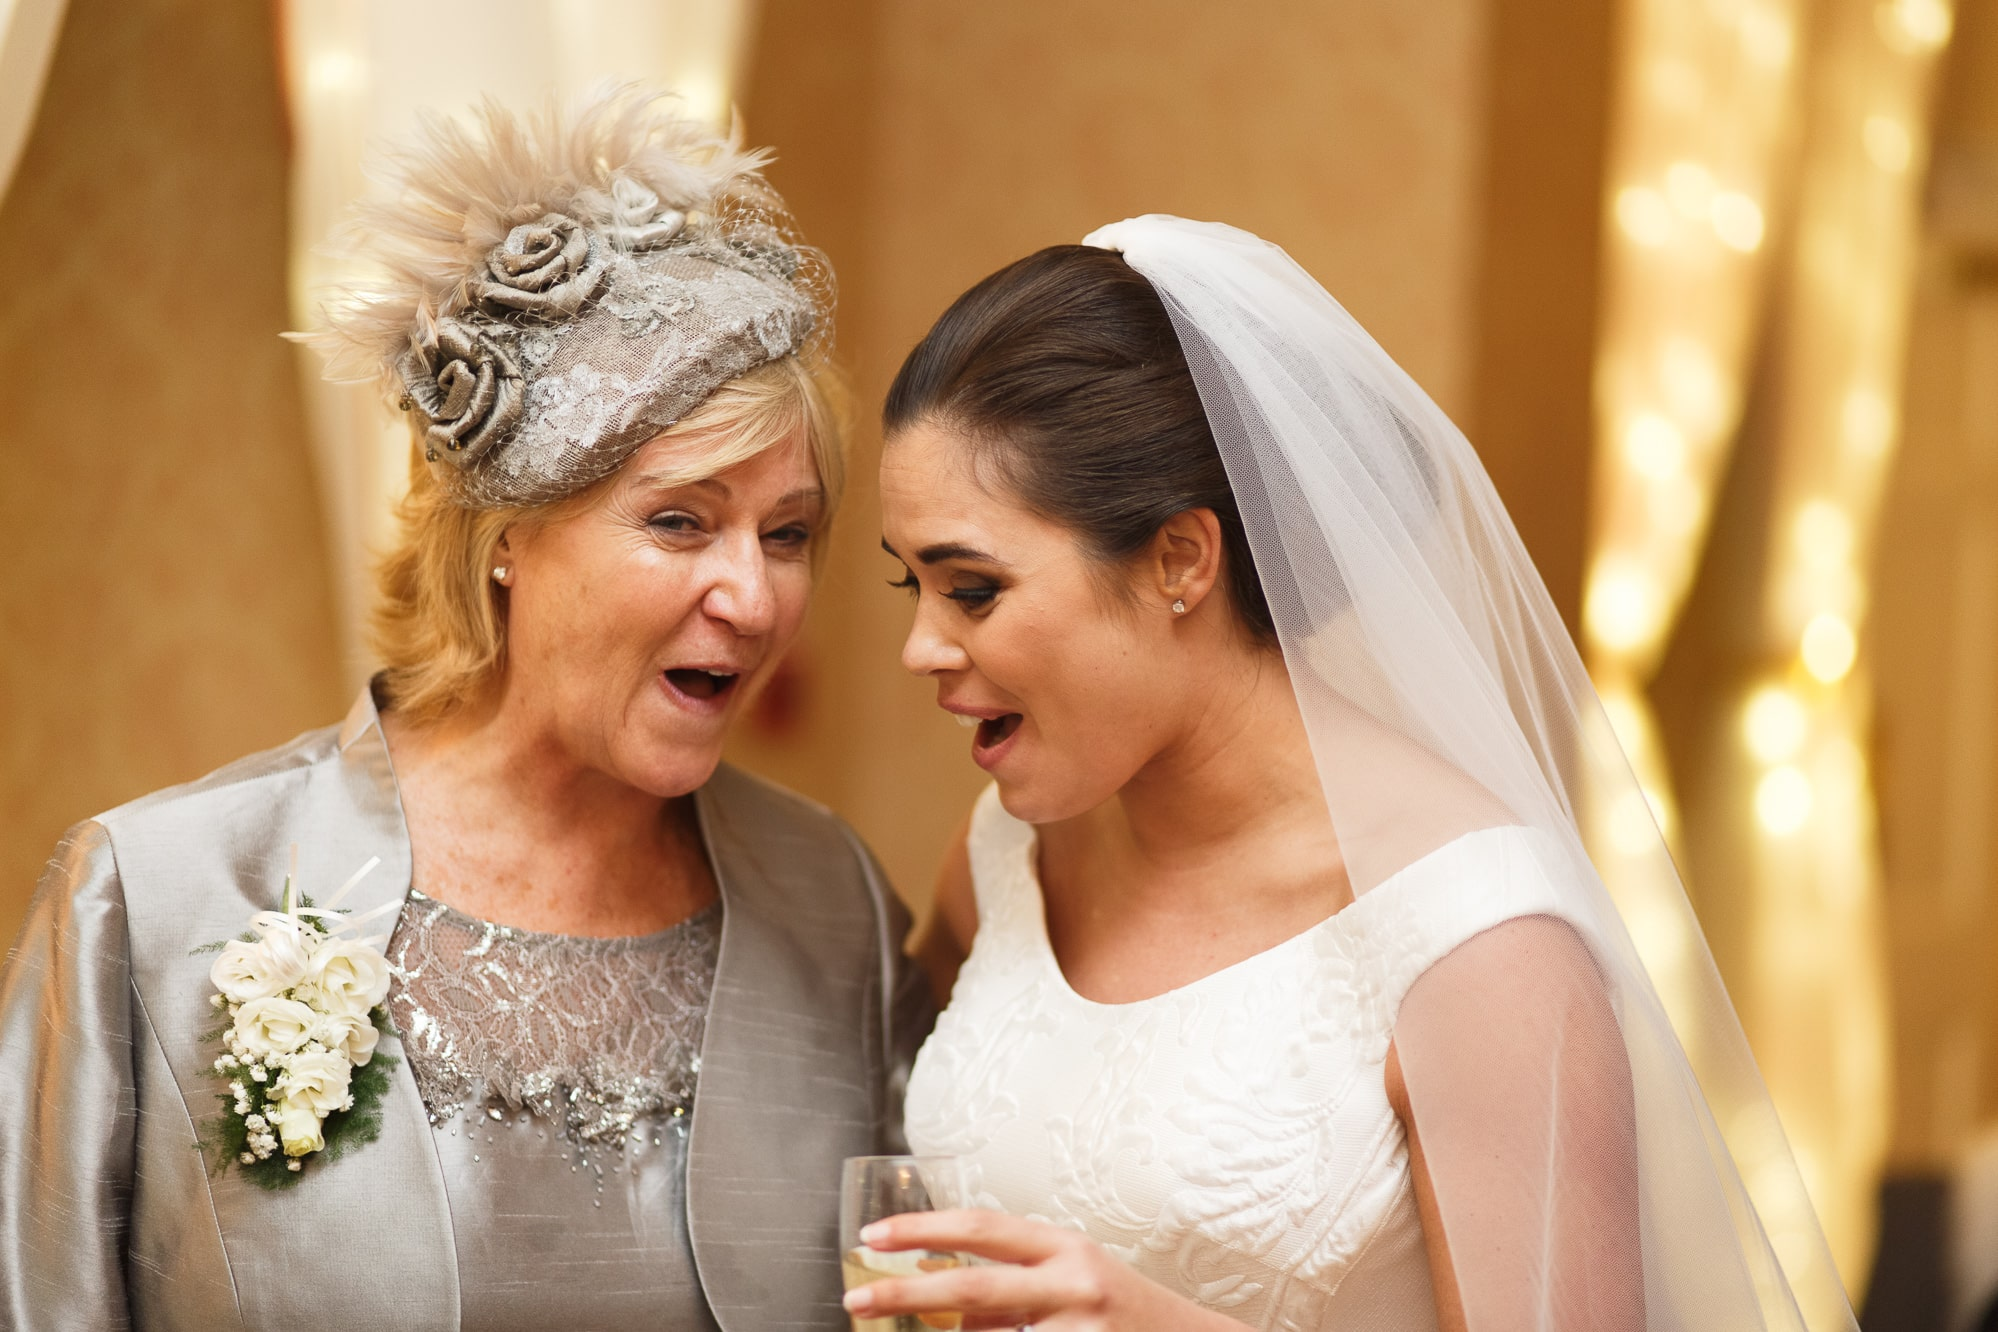 bride and mother in law laughing